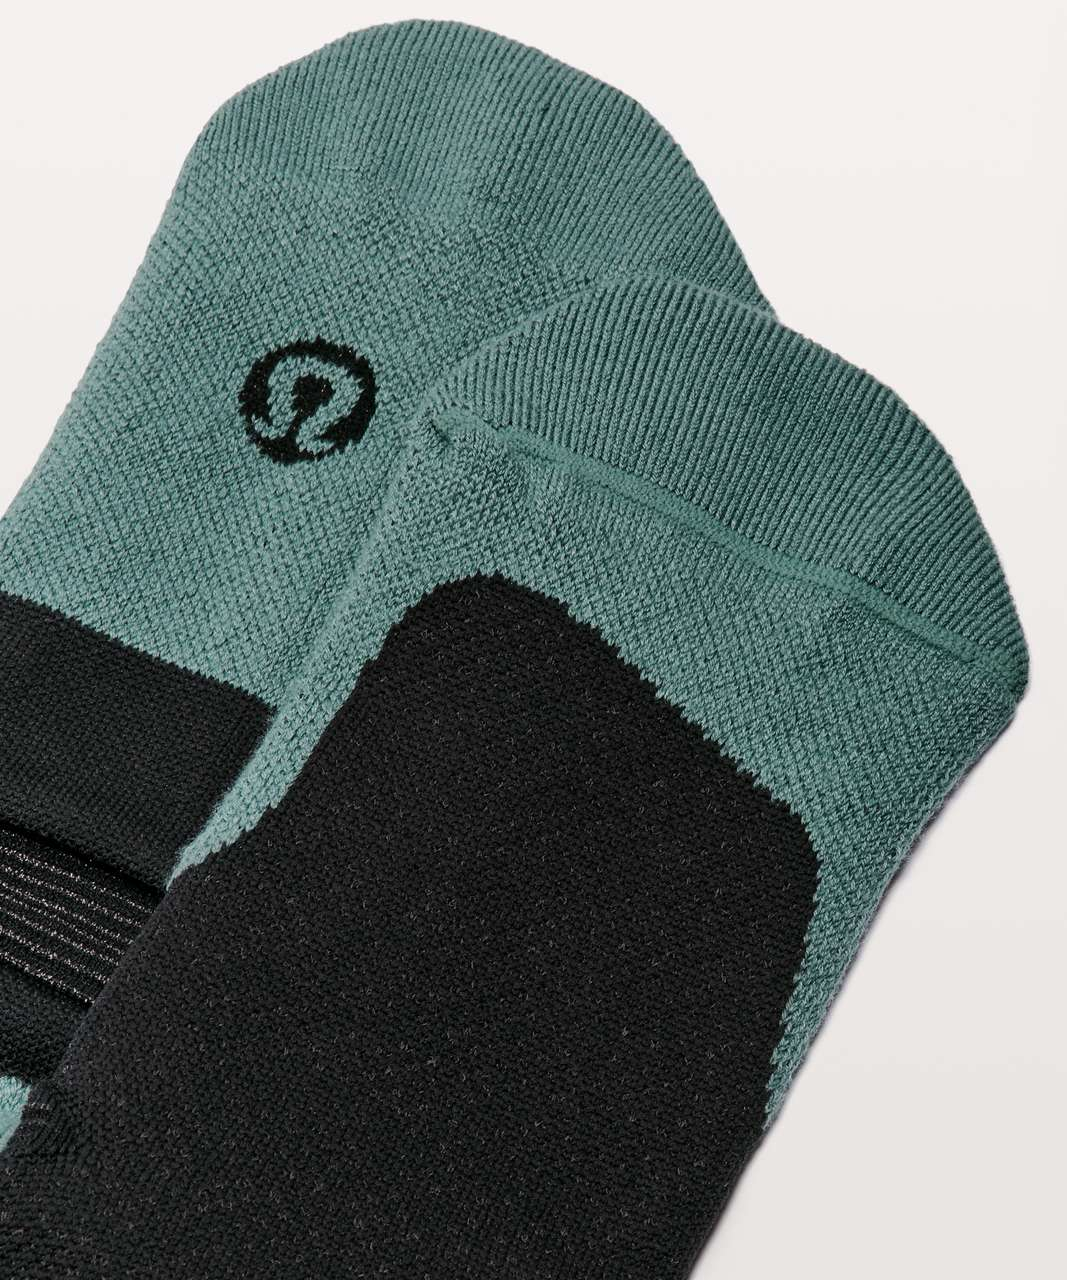 Lululemon T.H.E. Sock *Silver - Mystic Green / Black